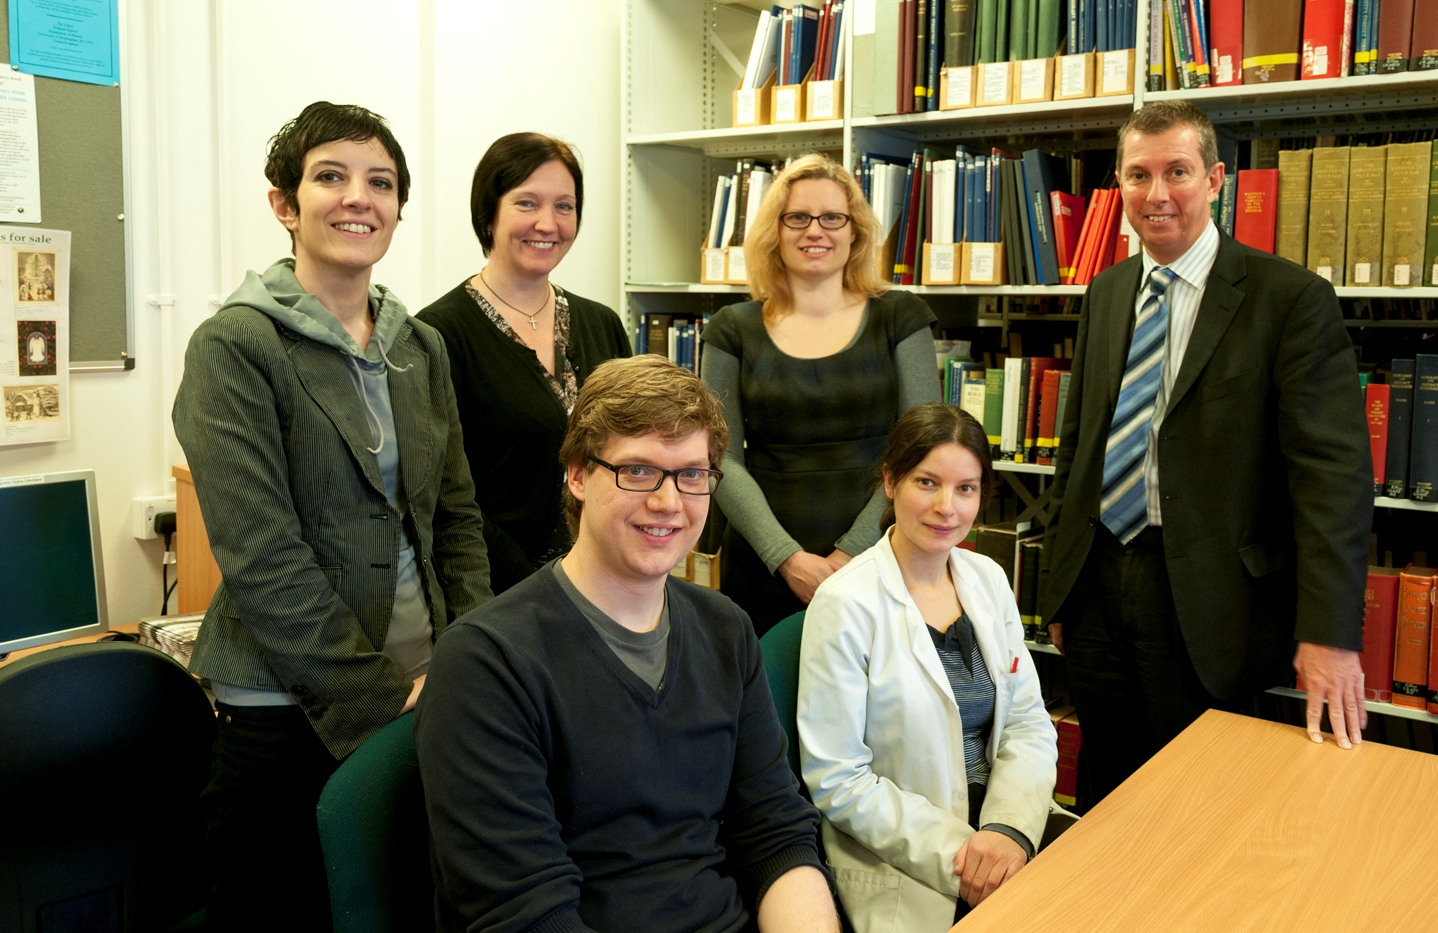 Mark Dorrington (right) is welcomed to the Reading Room bysome of the Manuscripts & Special Collections staff (clockwise from left) Eleonora, Debbie, Kathryn, Abigail and Nick.